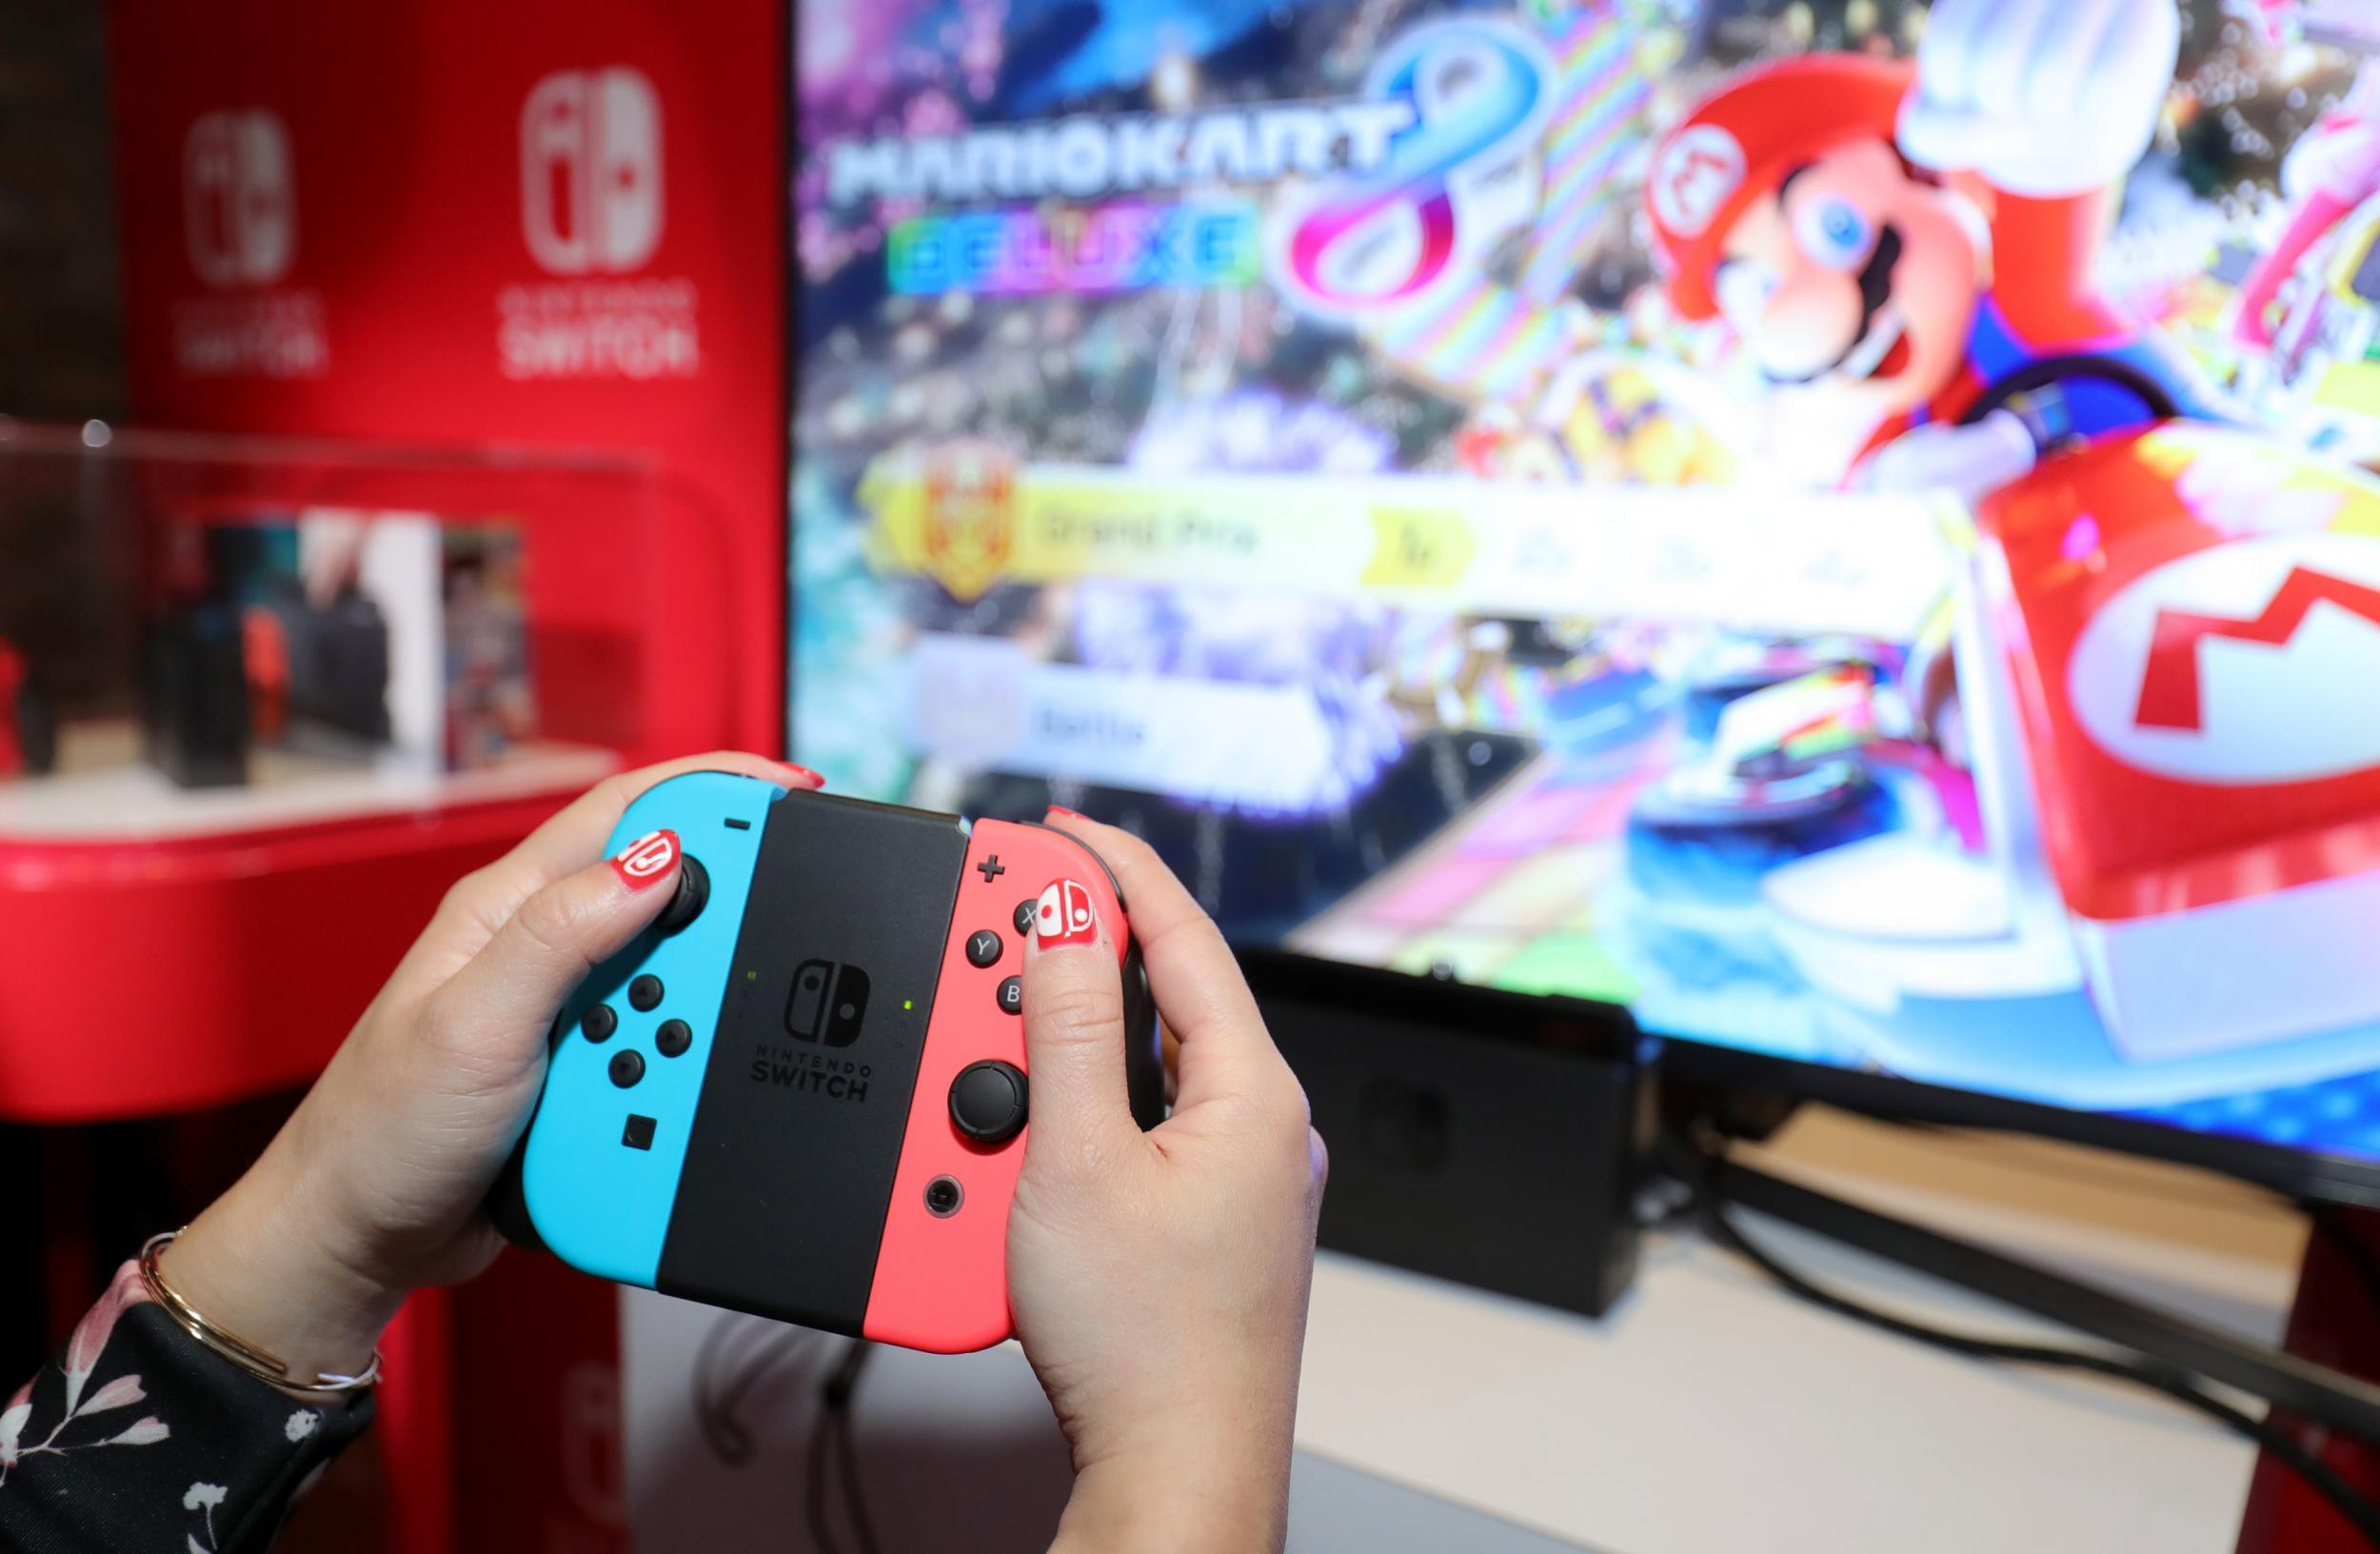 Nintendo Switch update: Second version of console could be released next year, report claims